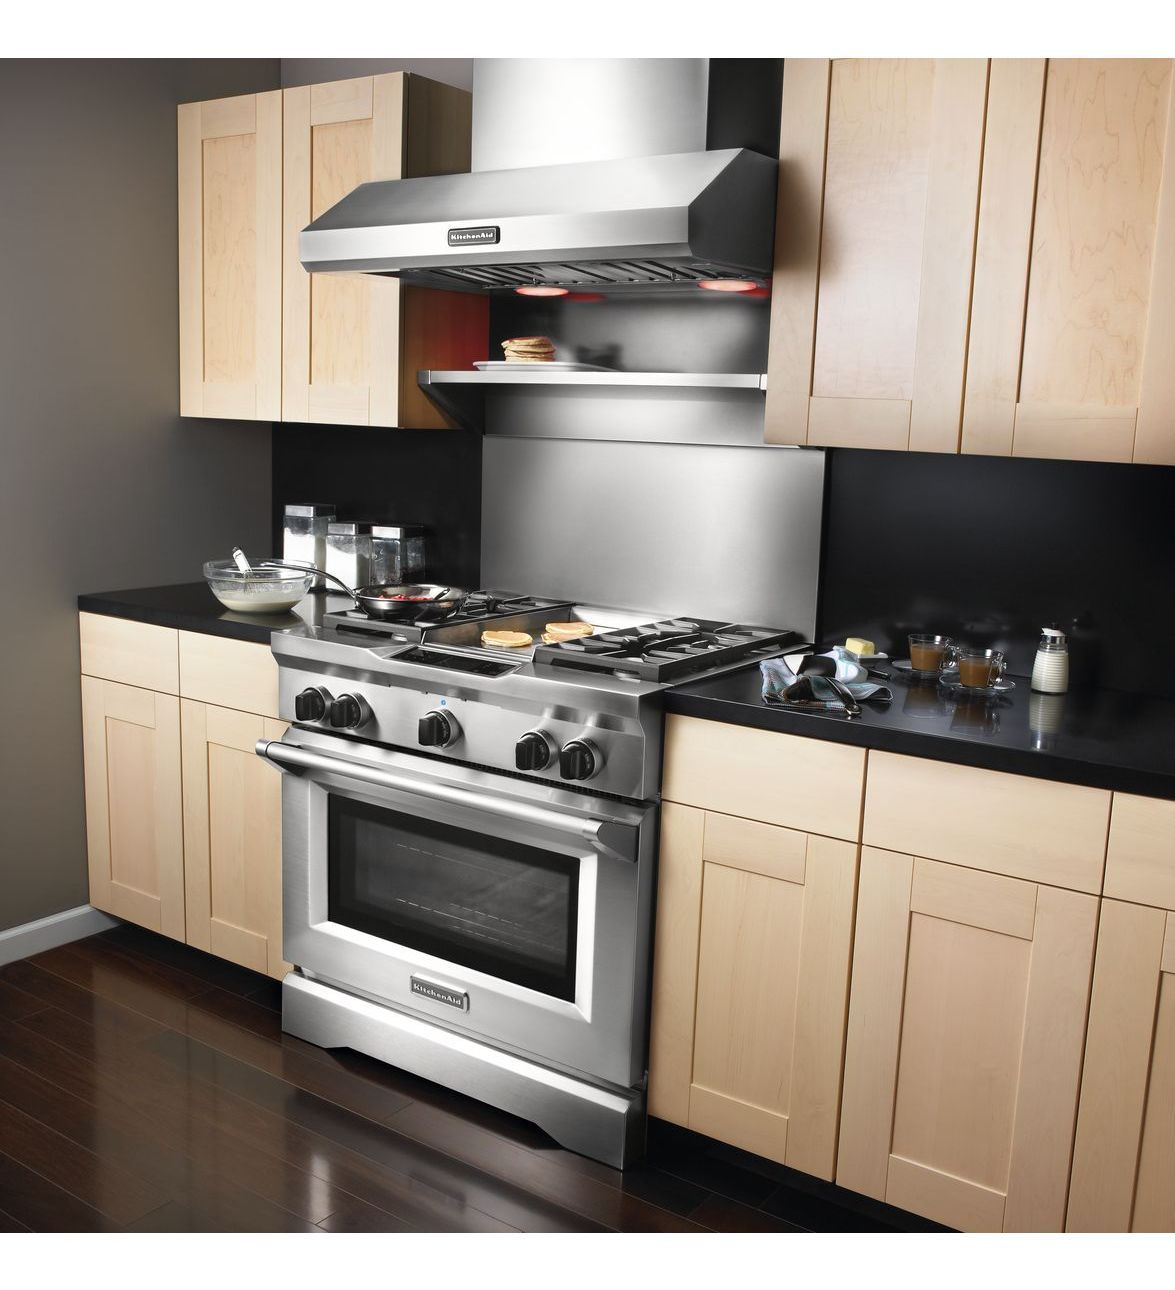 KITCHEN AID COMMERCIAL STYLE 36 INCH WITH BACKSPLASH